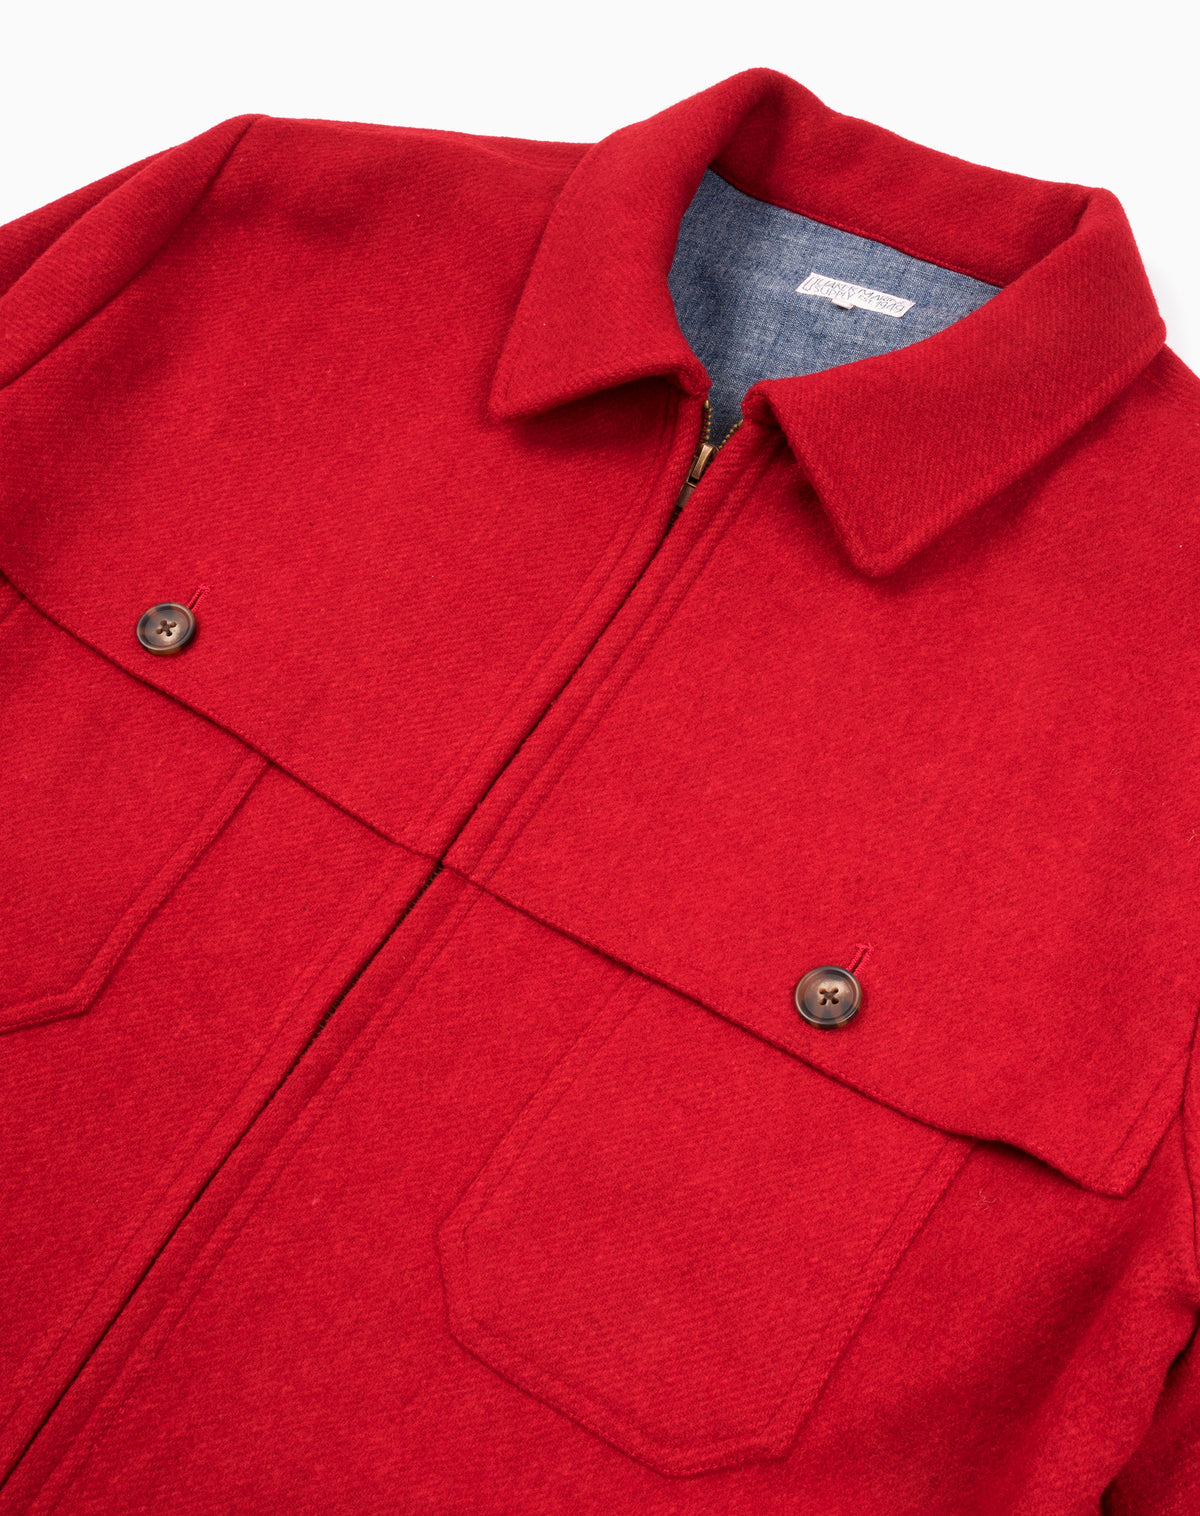 Hudson Jacket in Red